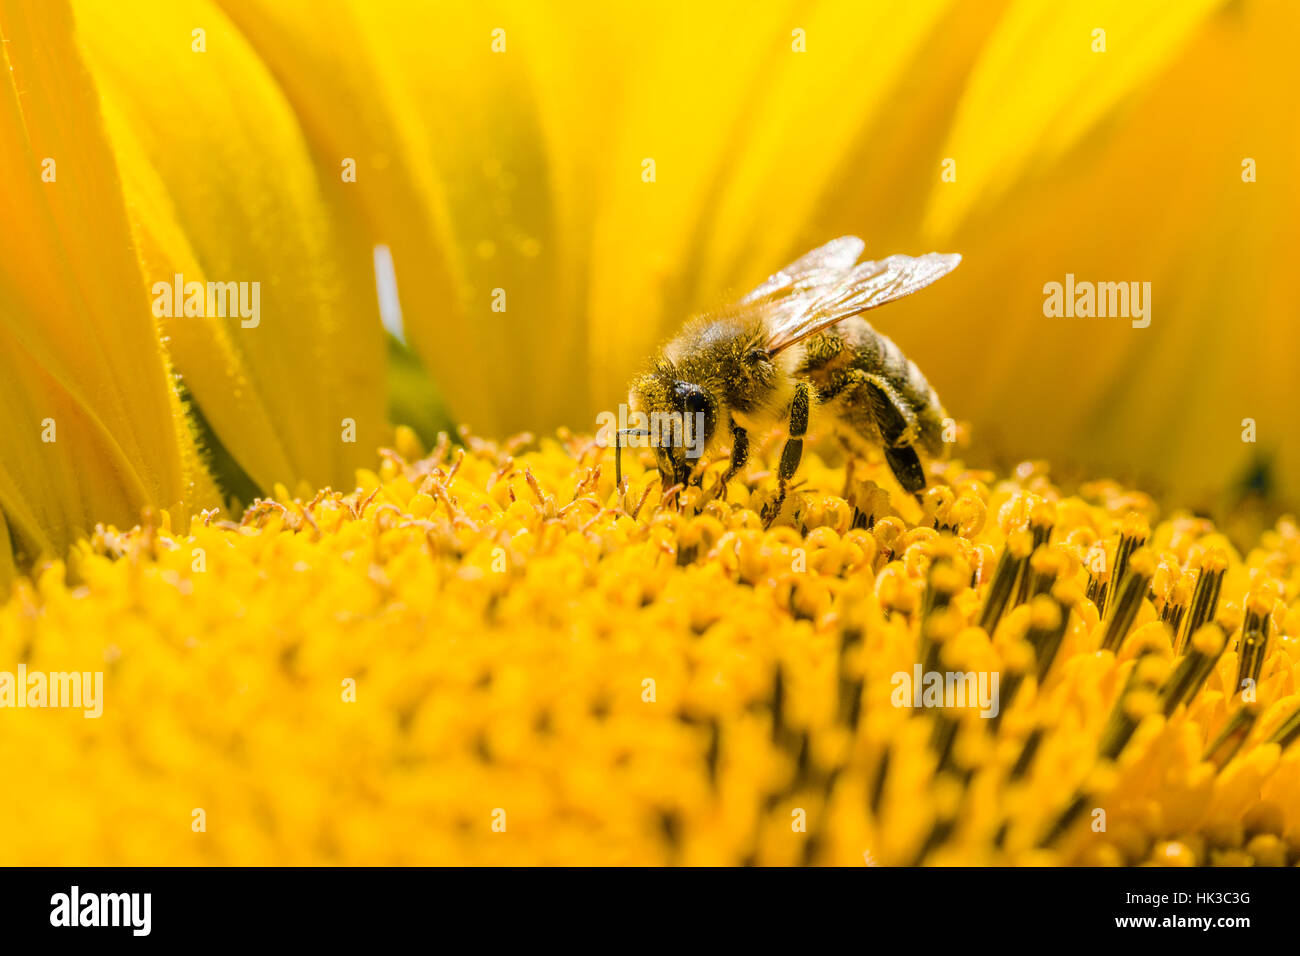 A Carniolan honey bee (Apis mellifera carnica) is collecting nectar at a common sunflower (Helianthus annuus) blossom - Stock Image